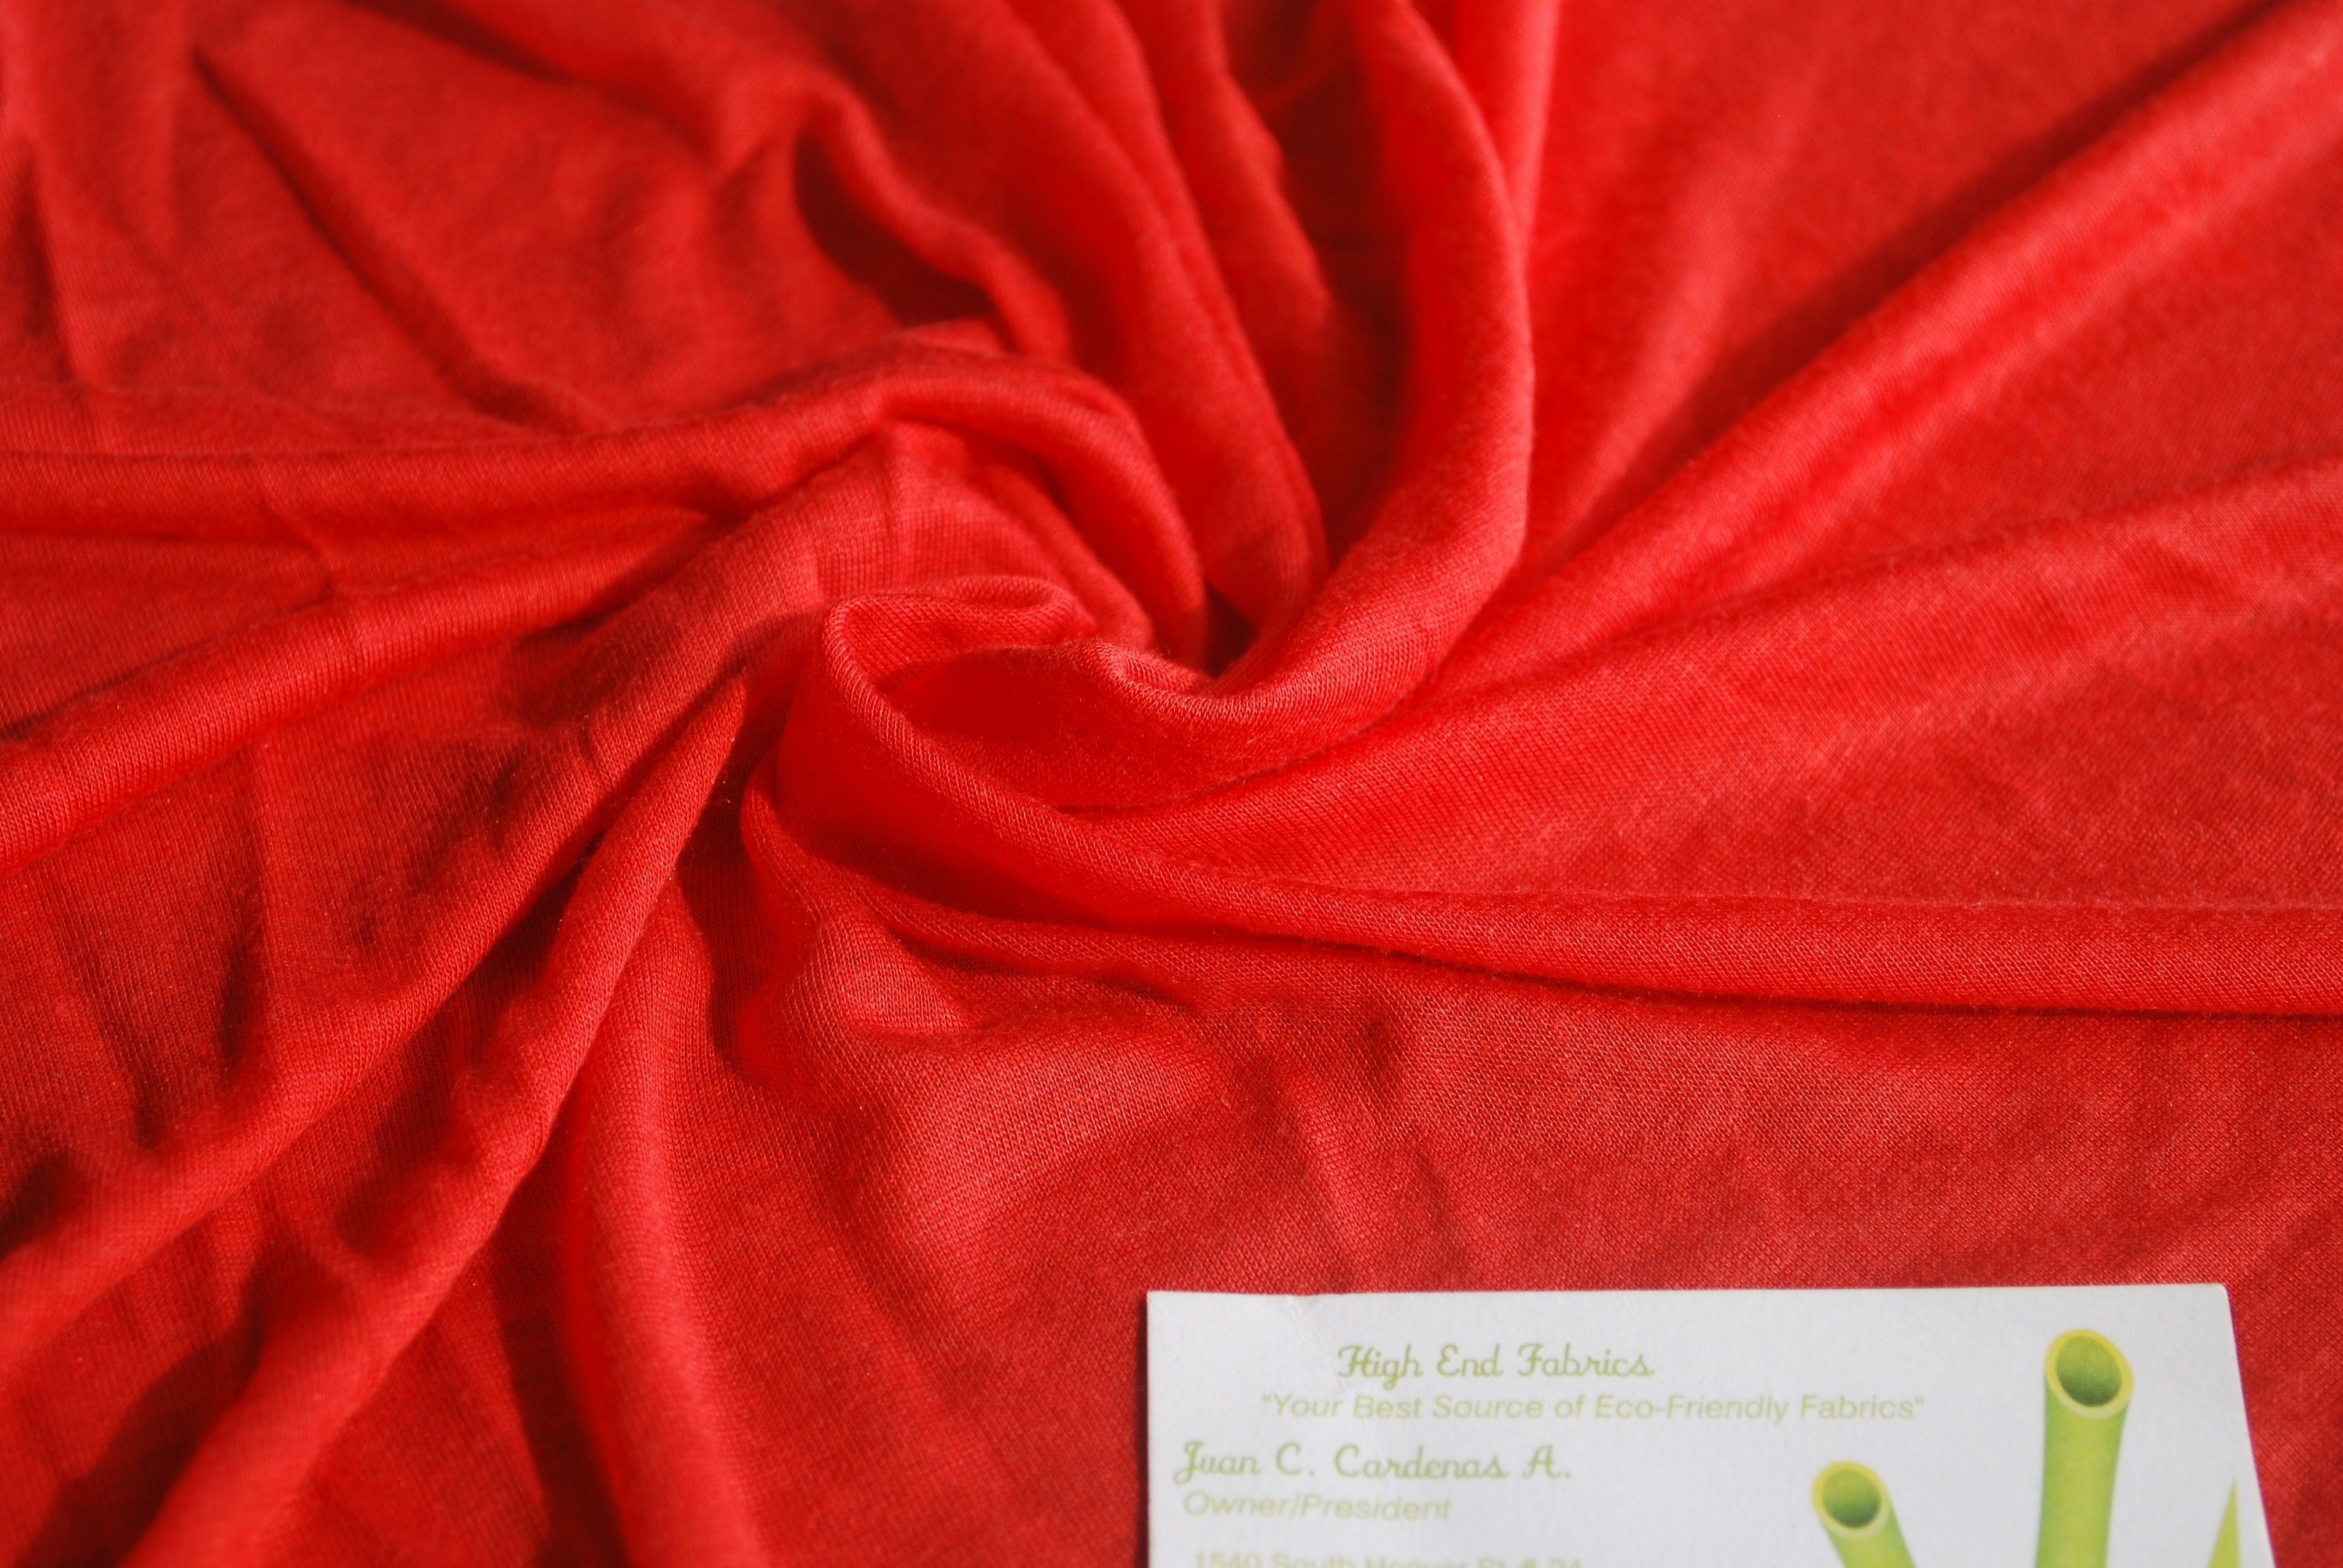 141582c7f4c Micro Modal Silk Sheer Knit Jersey DK Tomatoe Red by the yard | Etsy